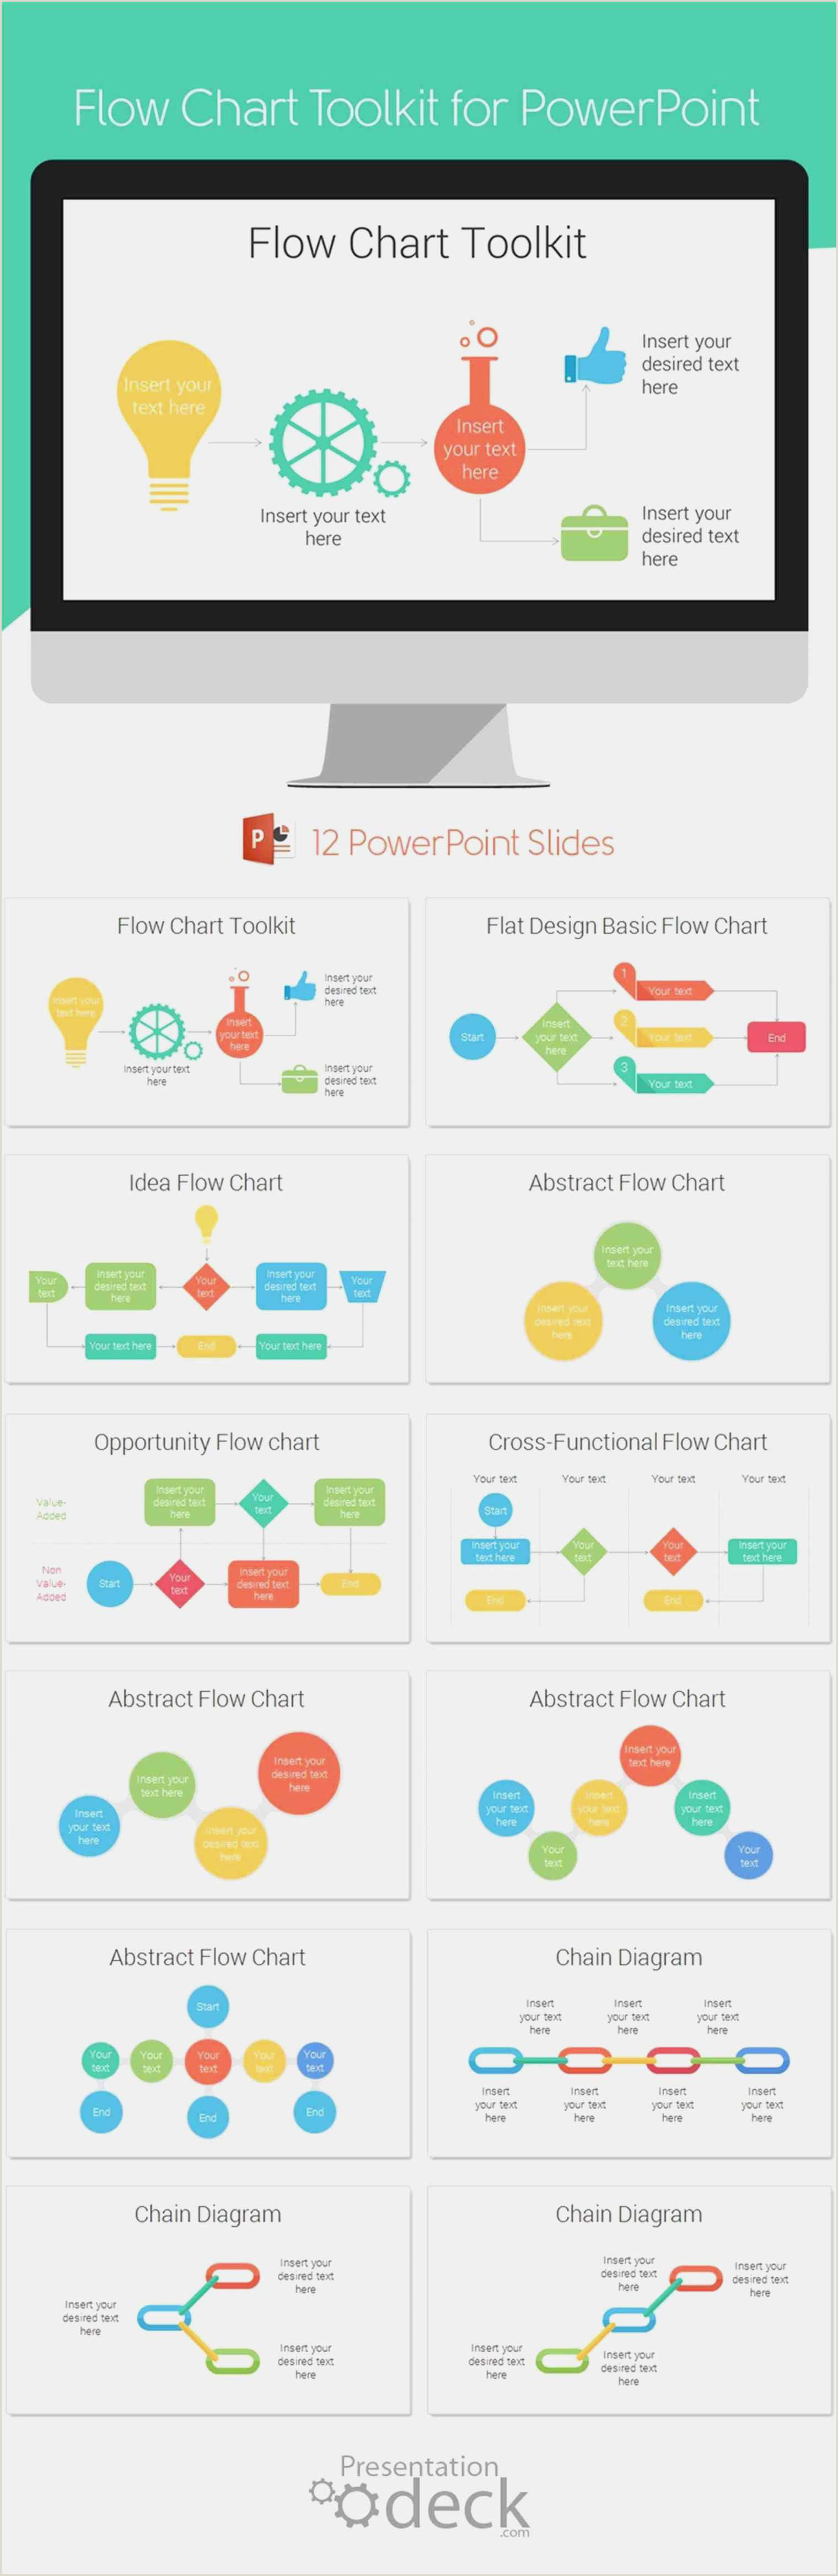 Visio Cross Functional Flowchart Template Free Sample Flow Chart Best ¢‹†…¡ Sample Flow Chart Diagram